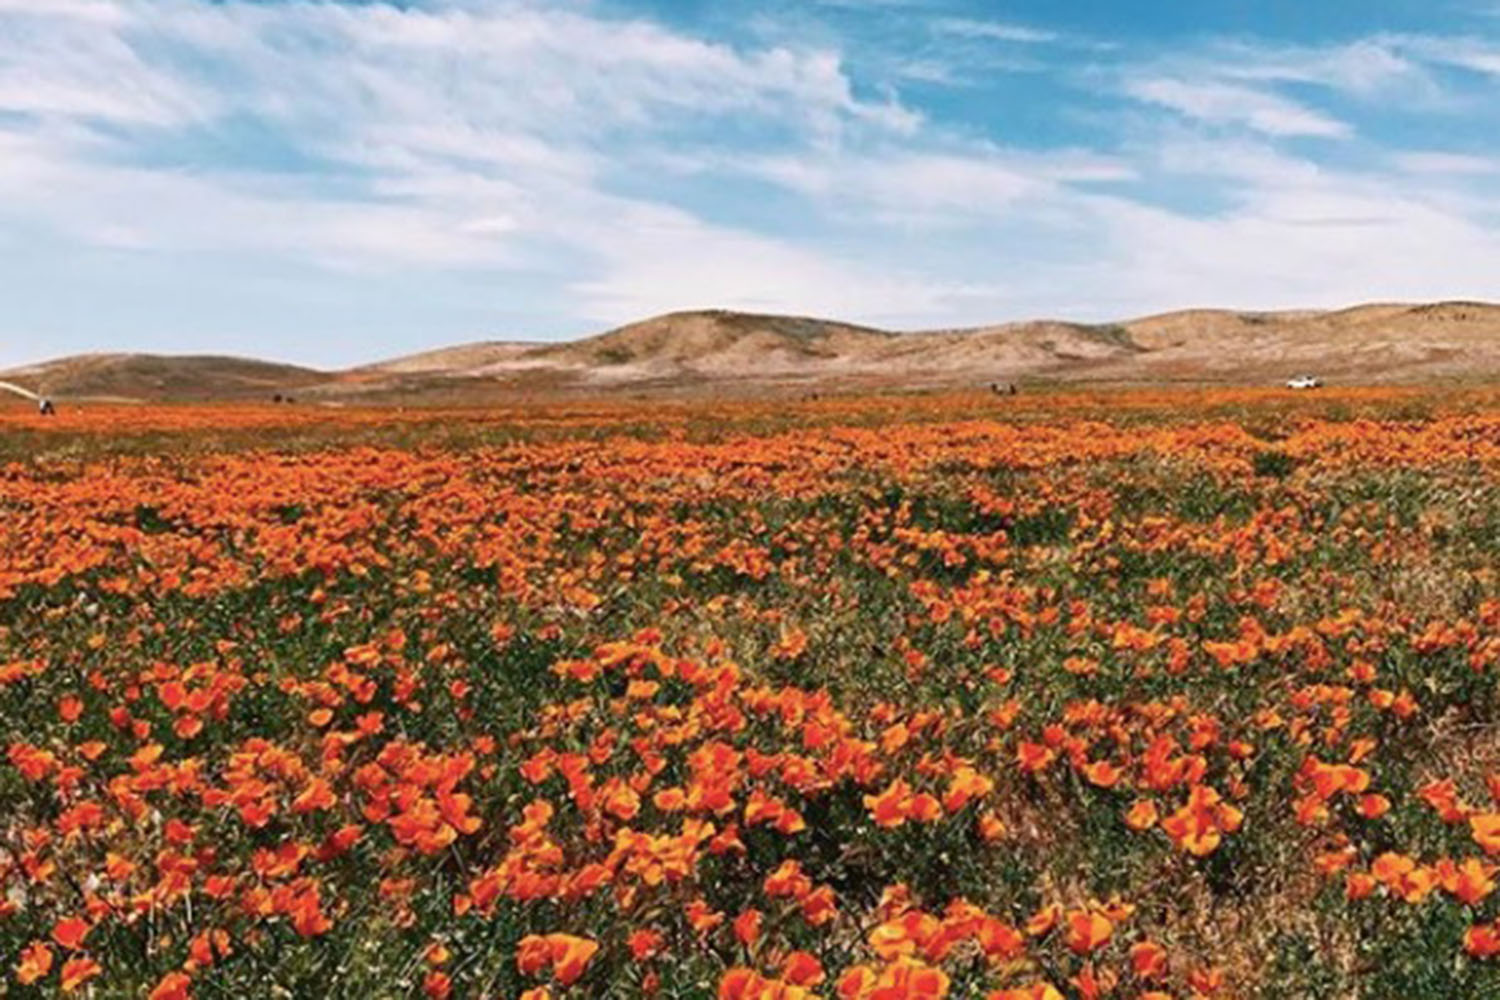 A snapshot of the vibrant California super bloom in Antelope Valley. The flowers are scattered across various valleys in California.